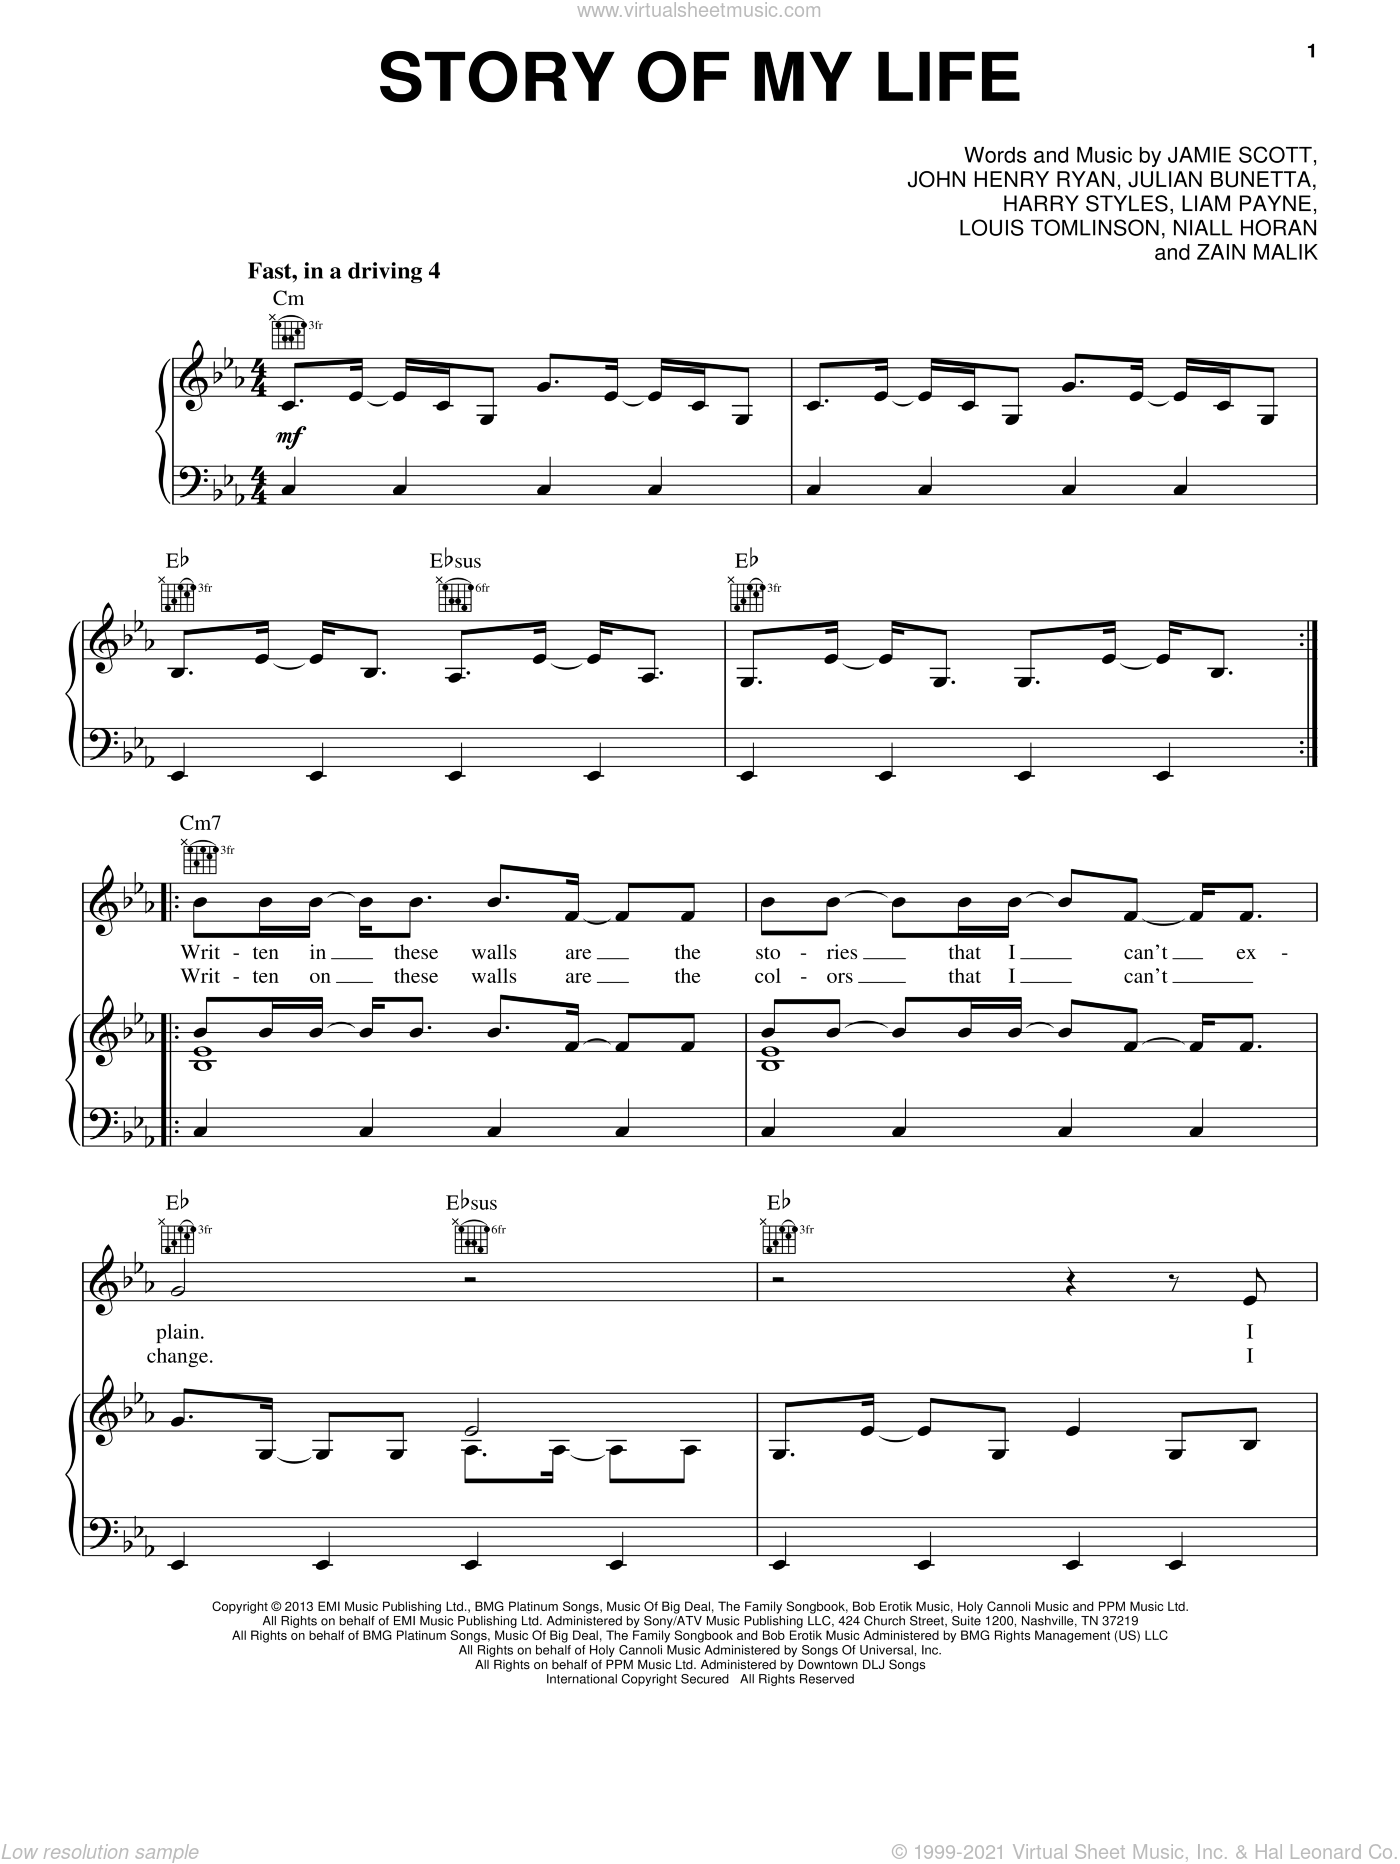 Story Of My Life sheet music for voice, piano or guitar by One Direction